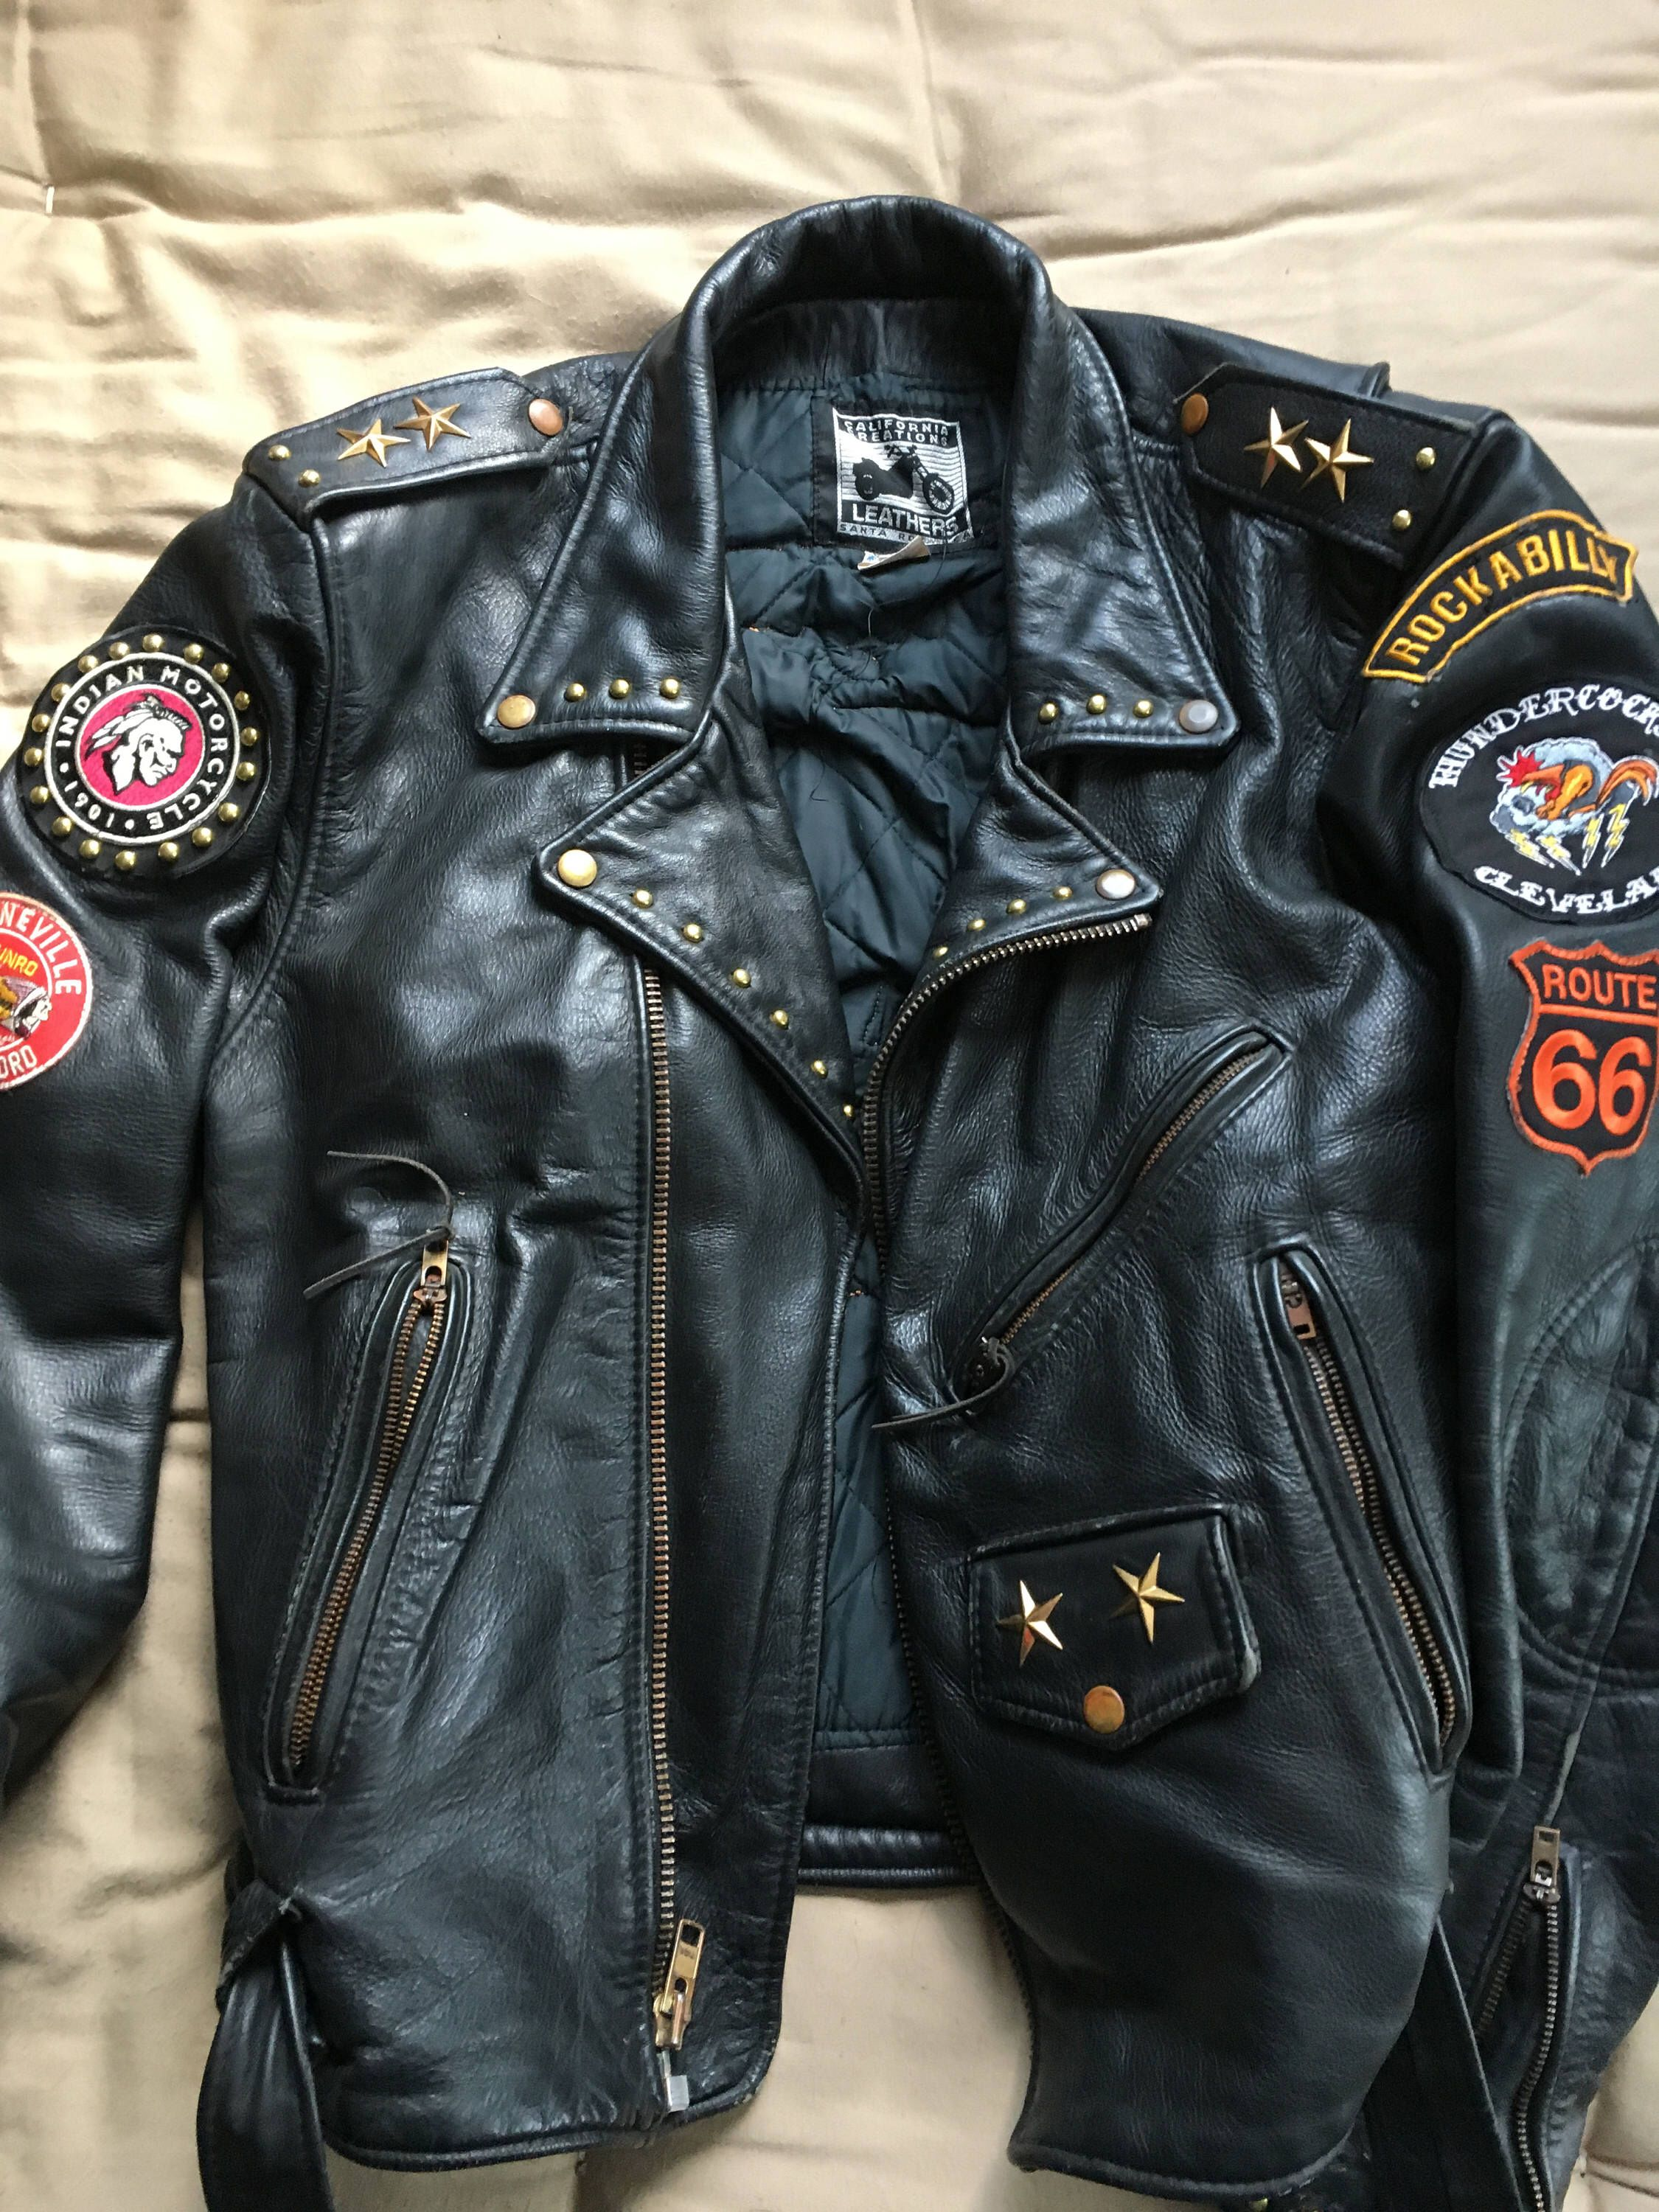 VTG Indian Motorcycle Jacket Unique Customized Patches